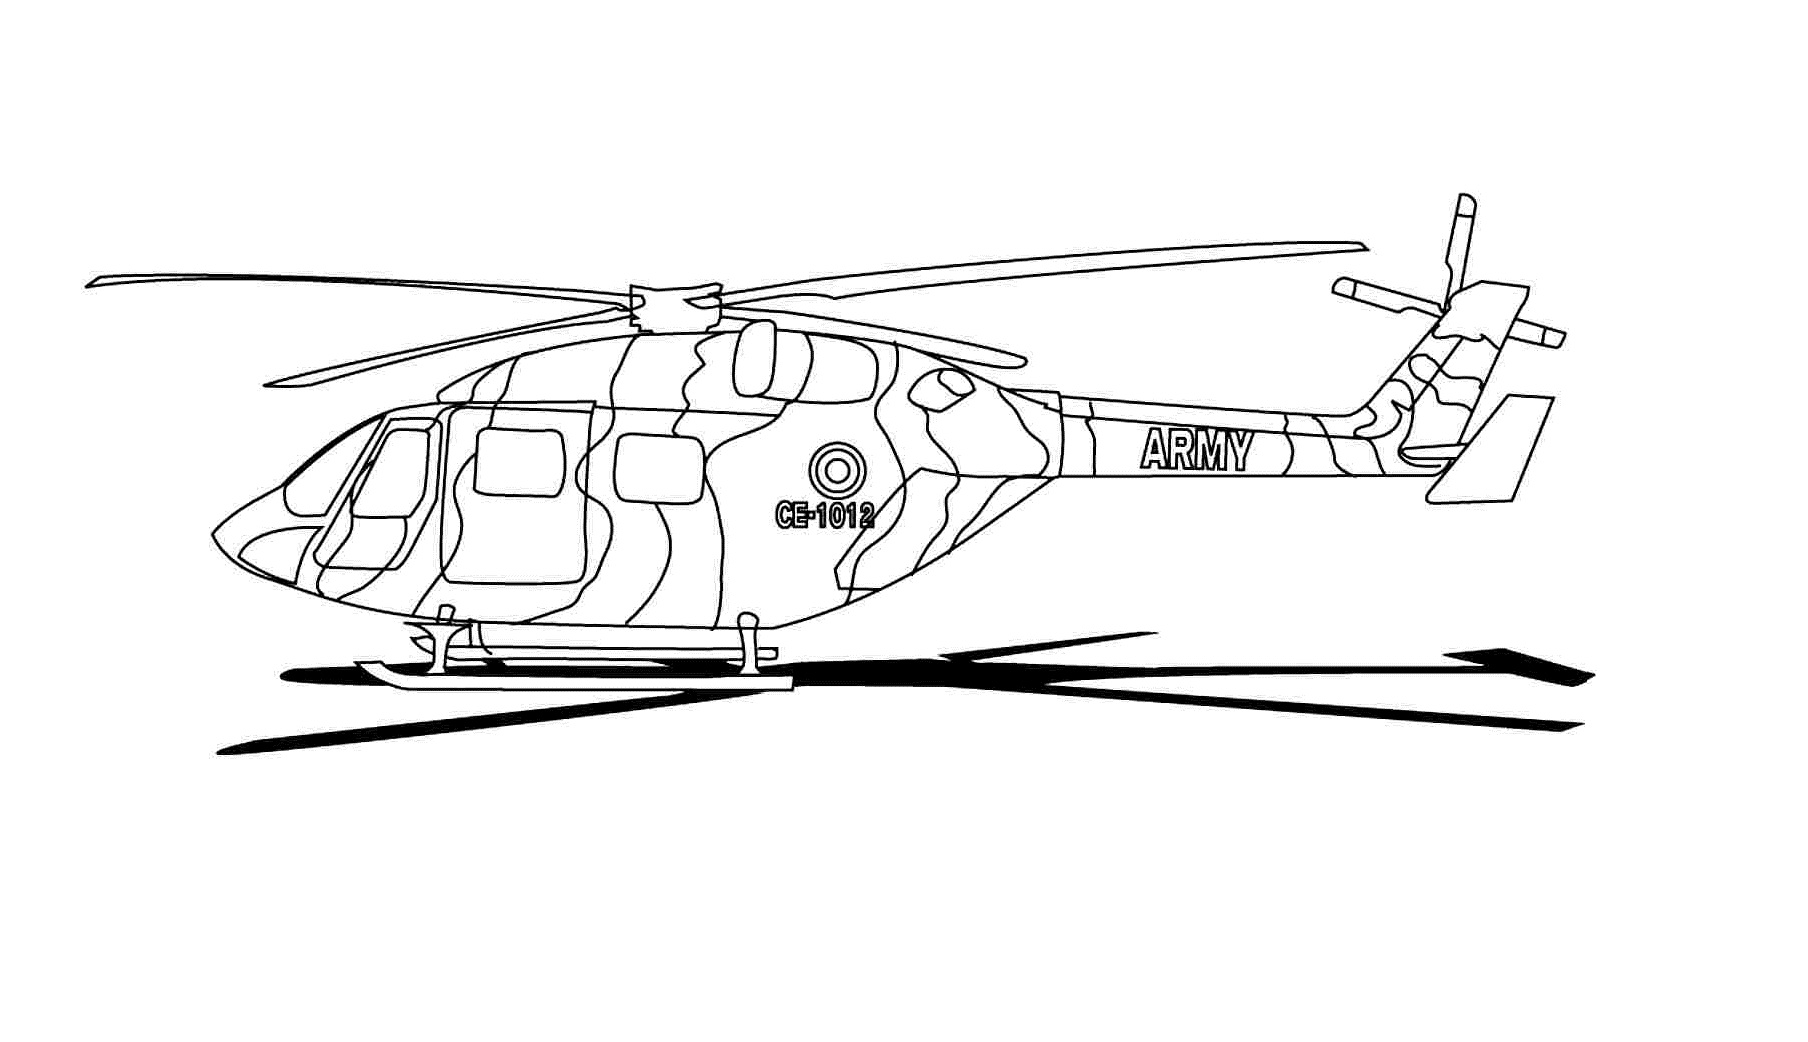 helicopter colouring pictures helicopter line drawing at getdrawings free download colouring pictures helicopter